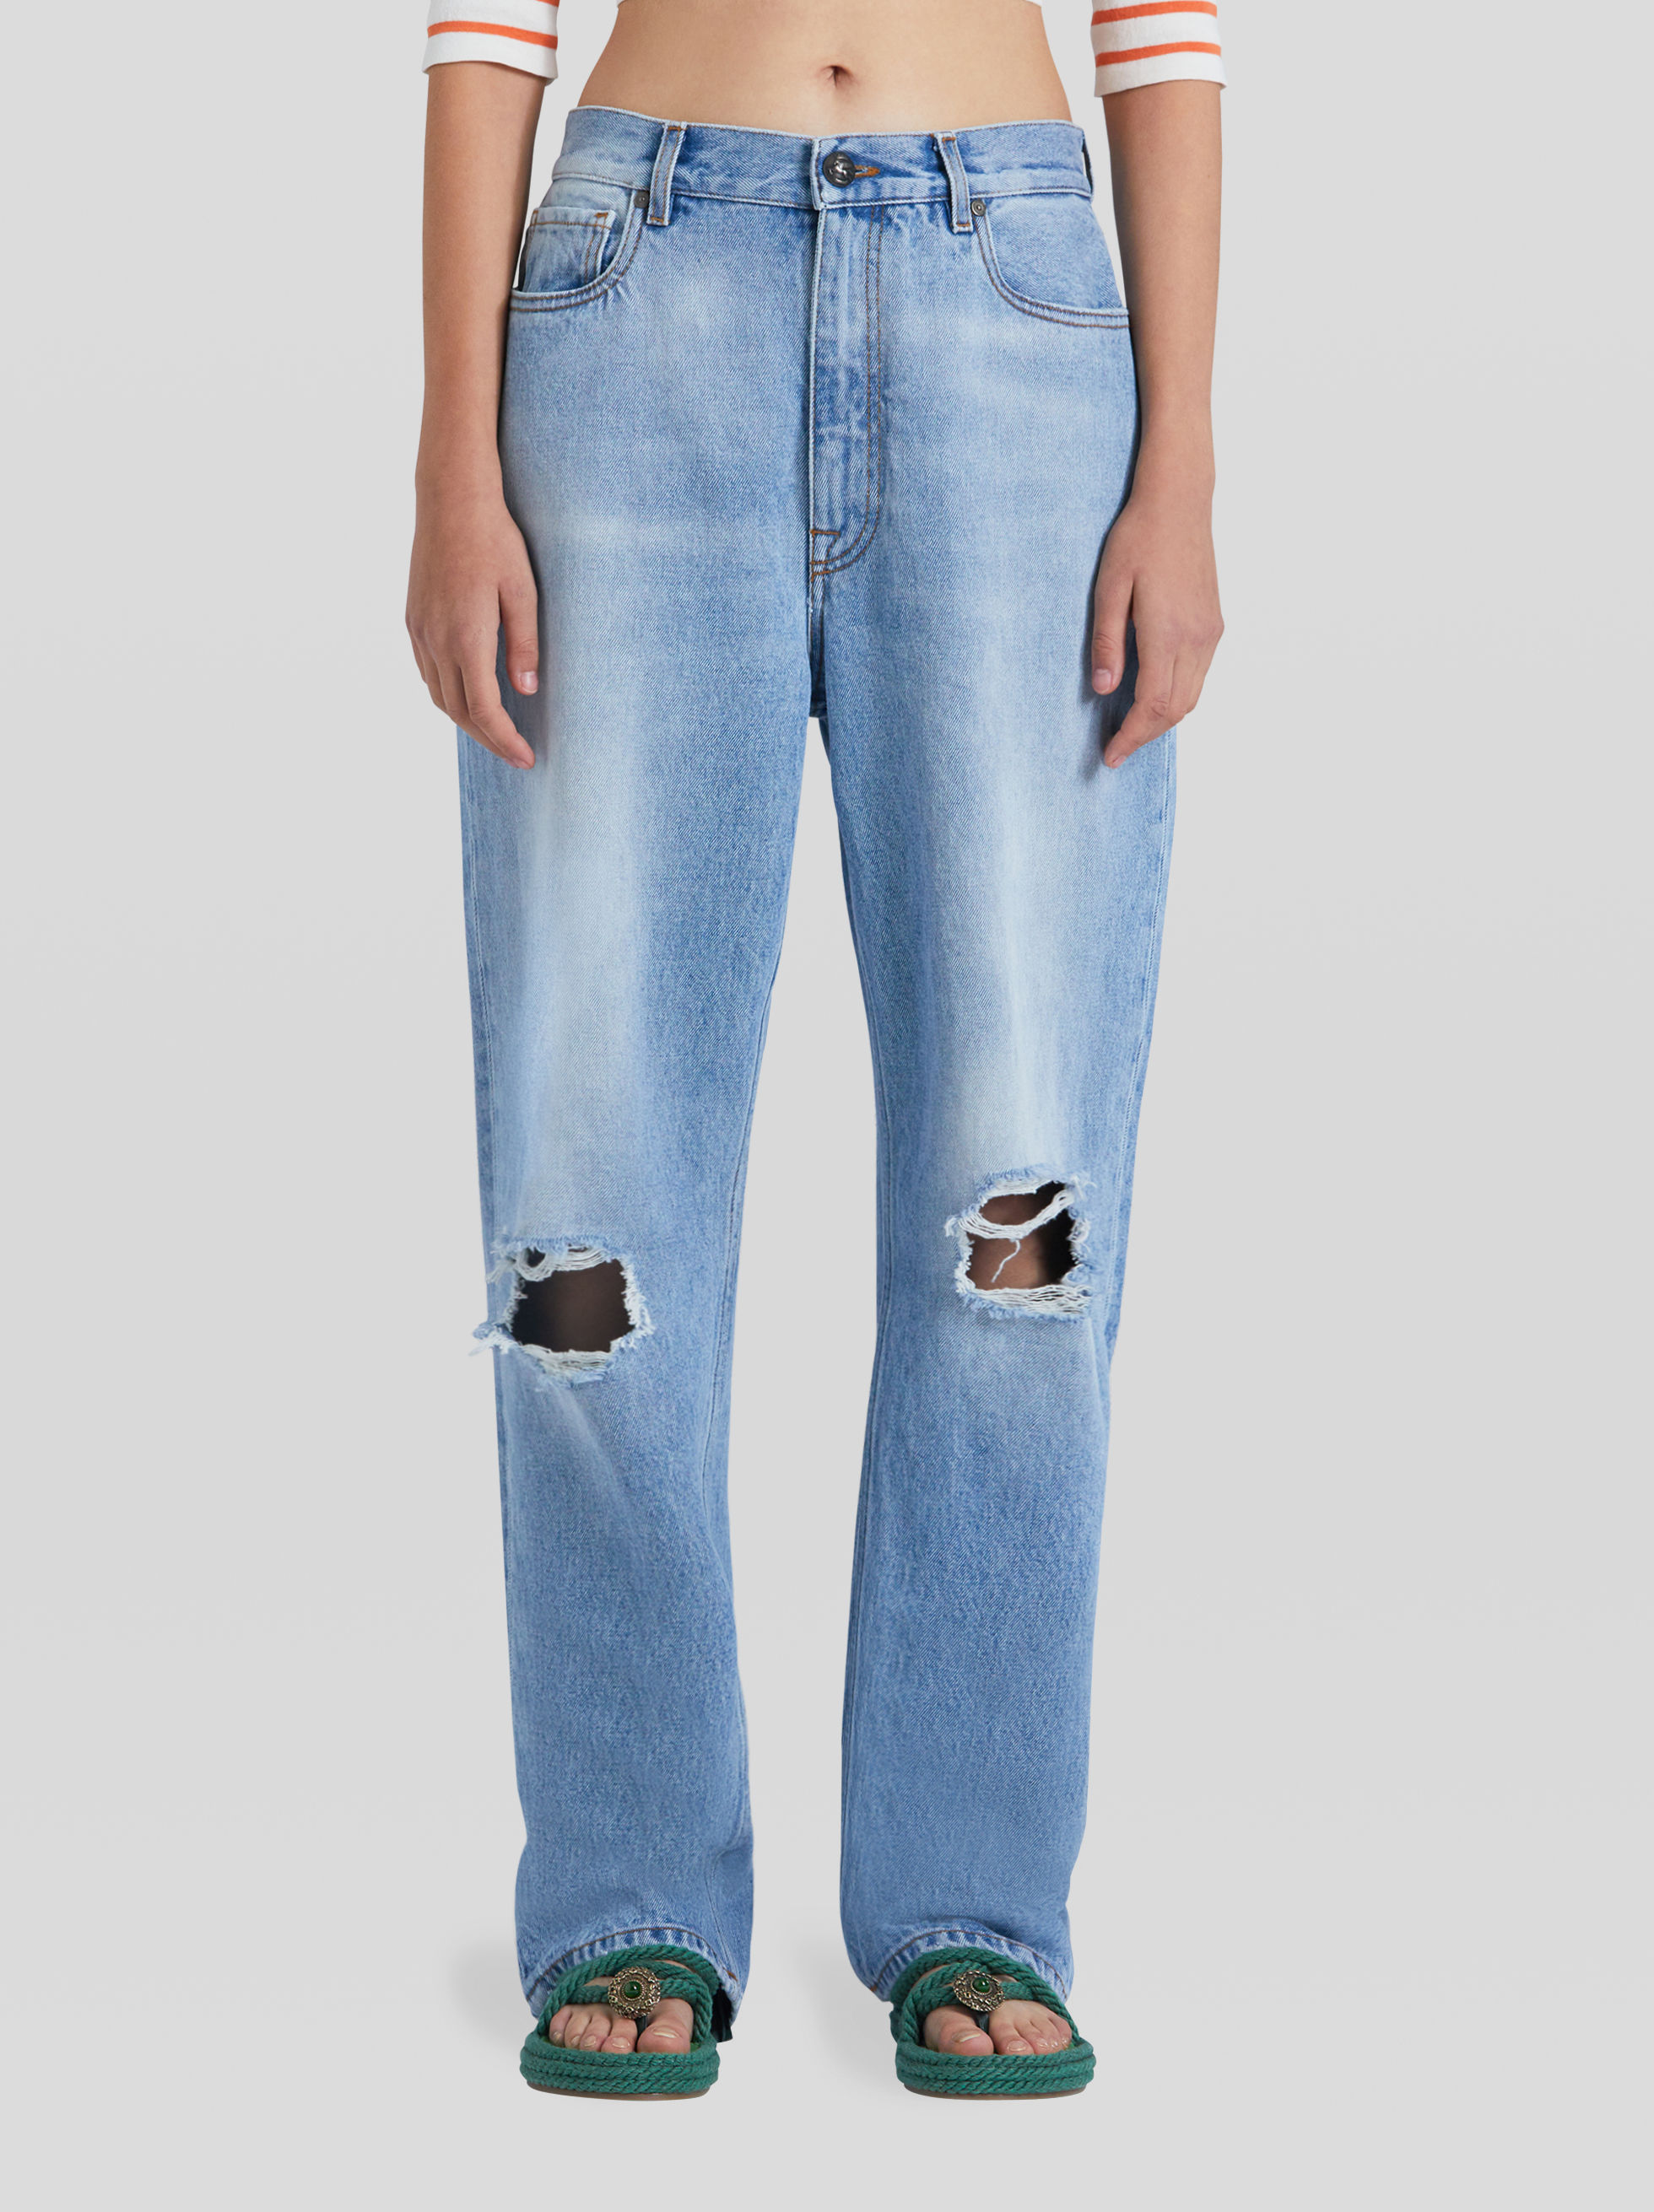 VAQUEROS DE DENIM DETALLES DISTRESSED